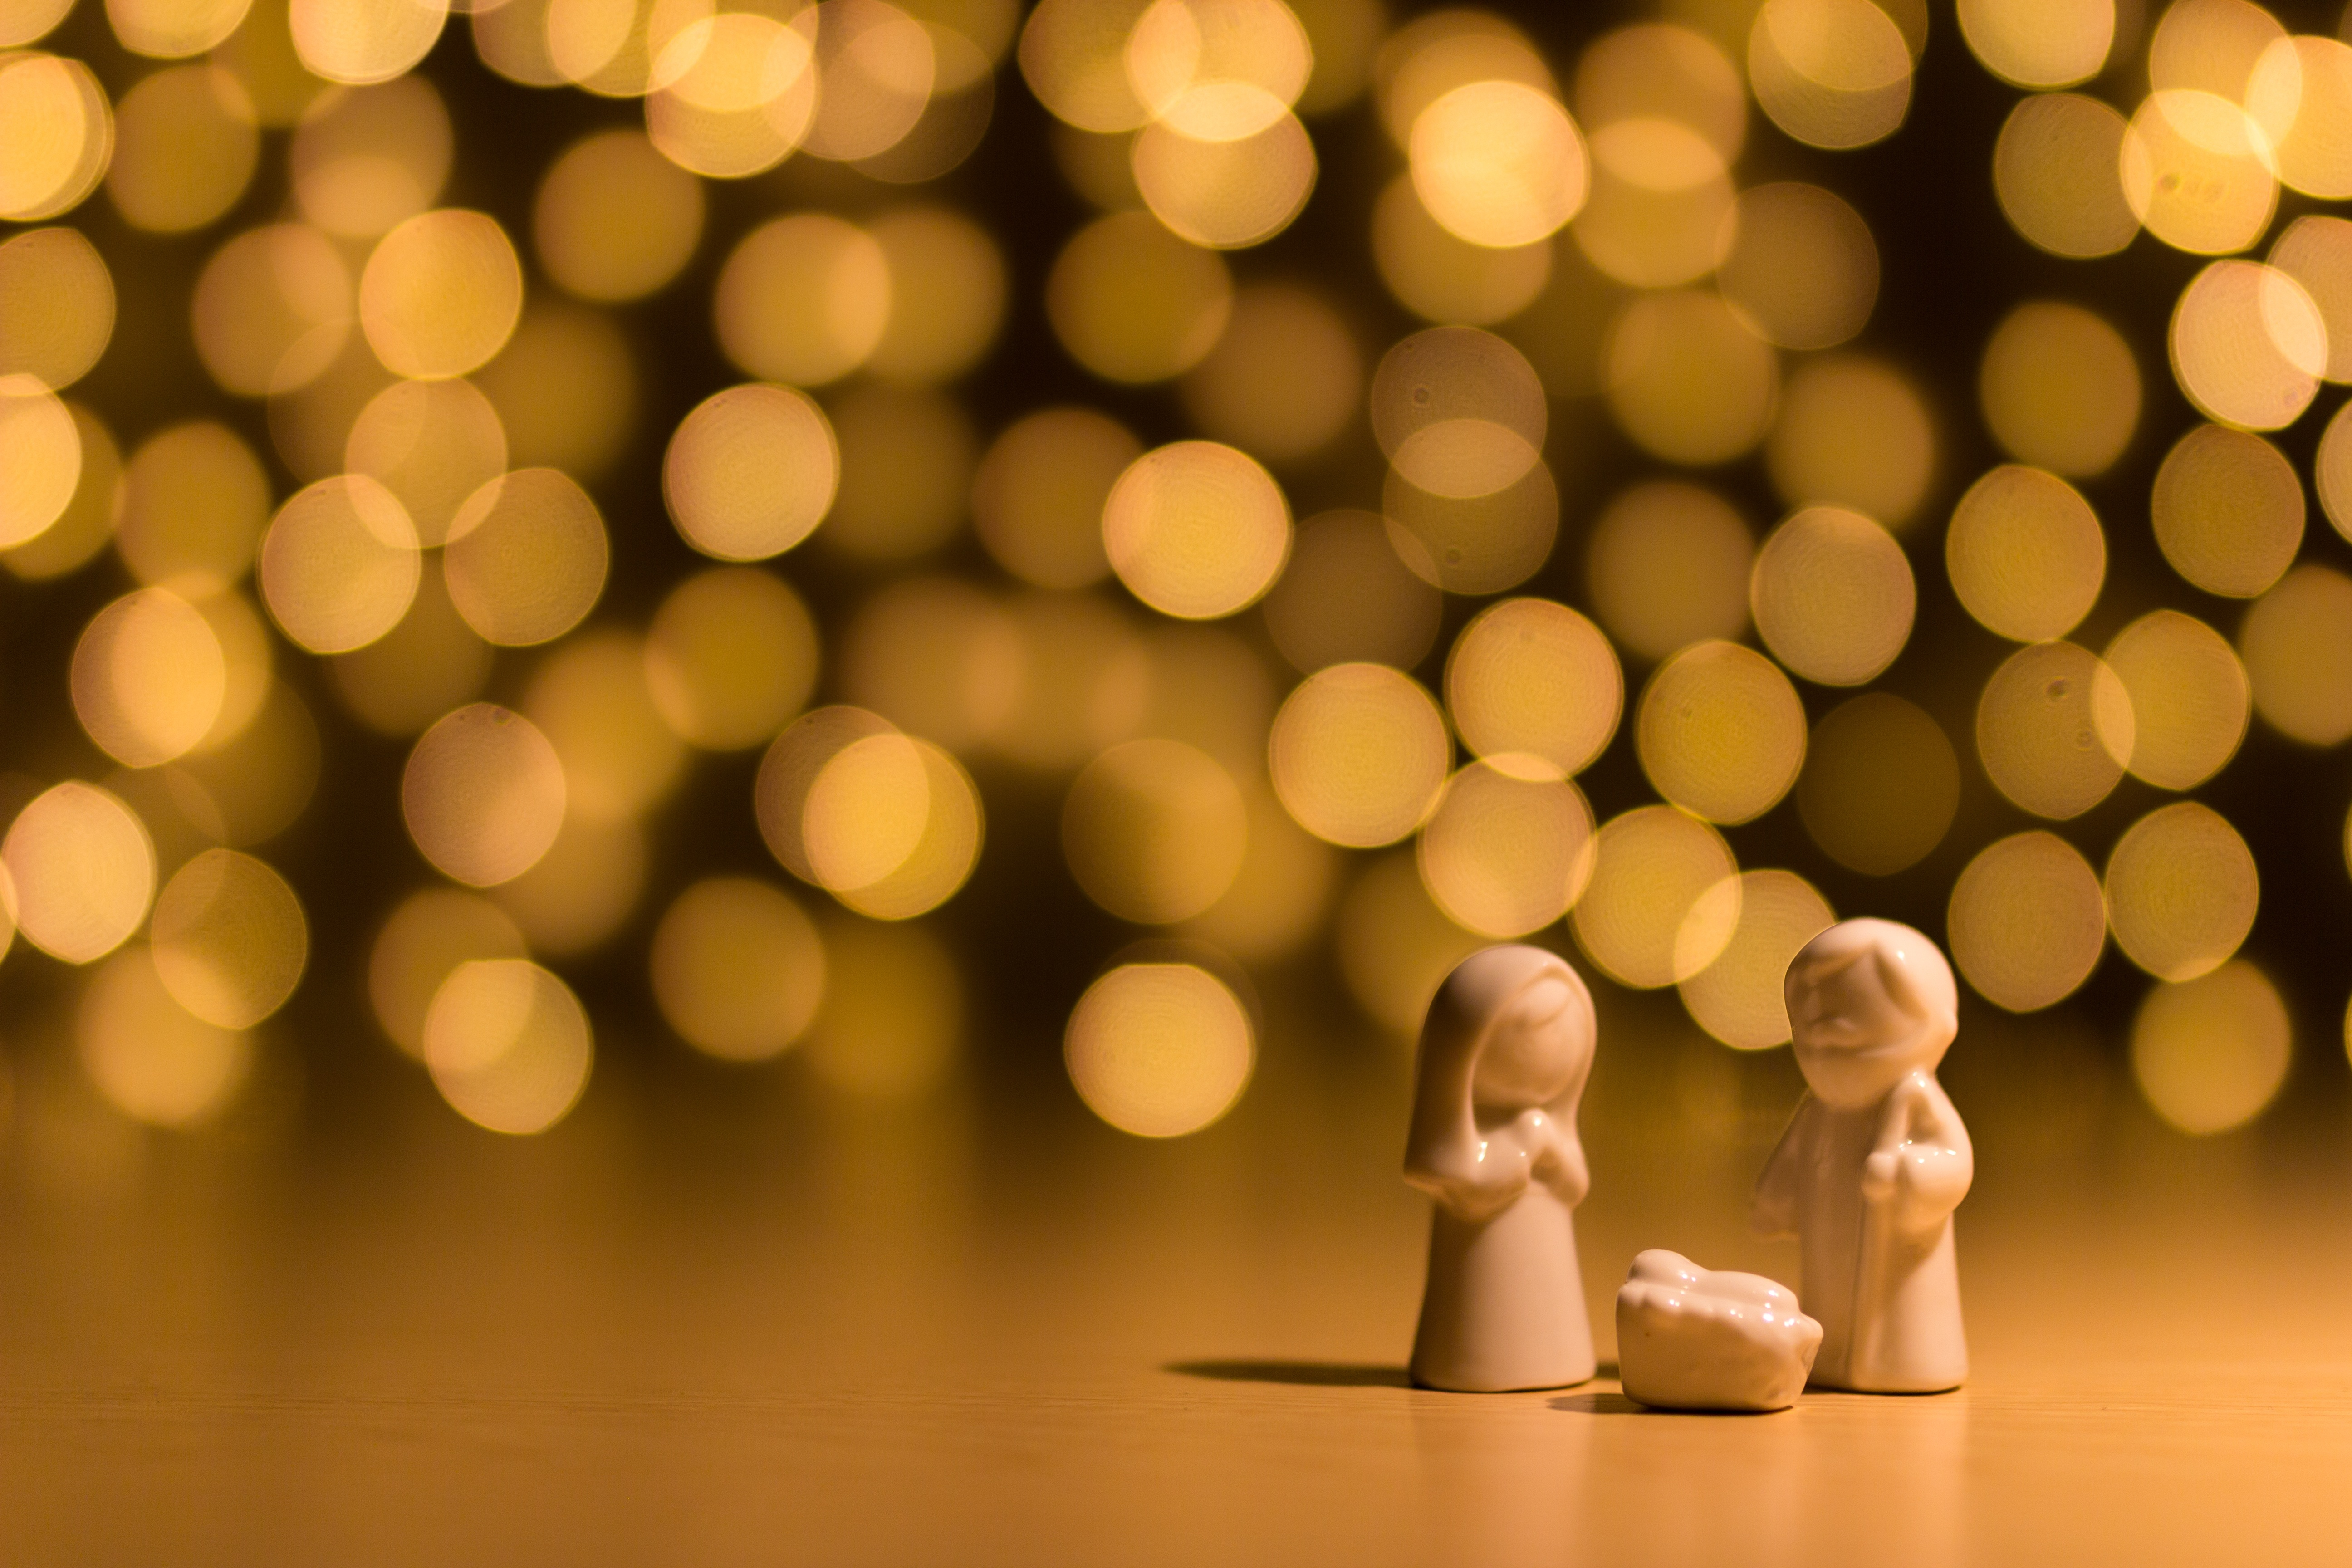 How To Find The Real Peace at Christmas and All Year Long